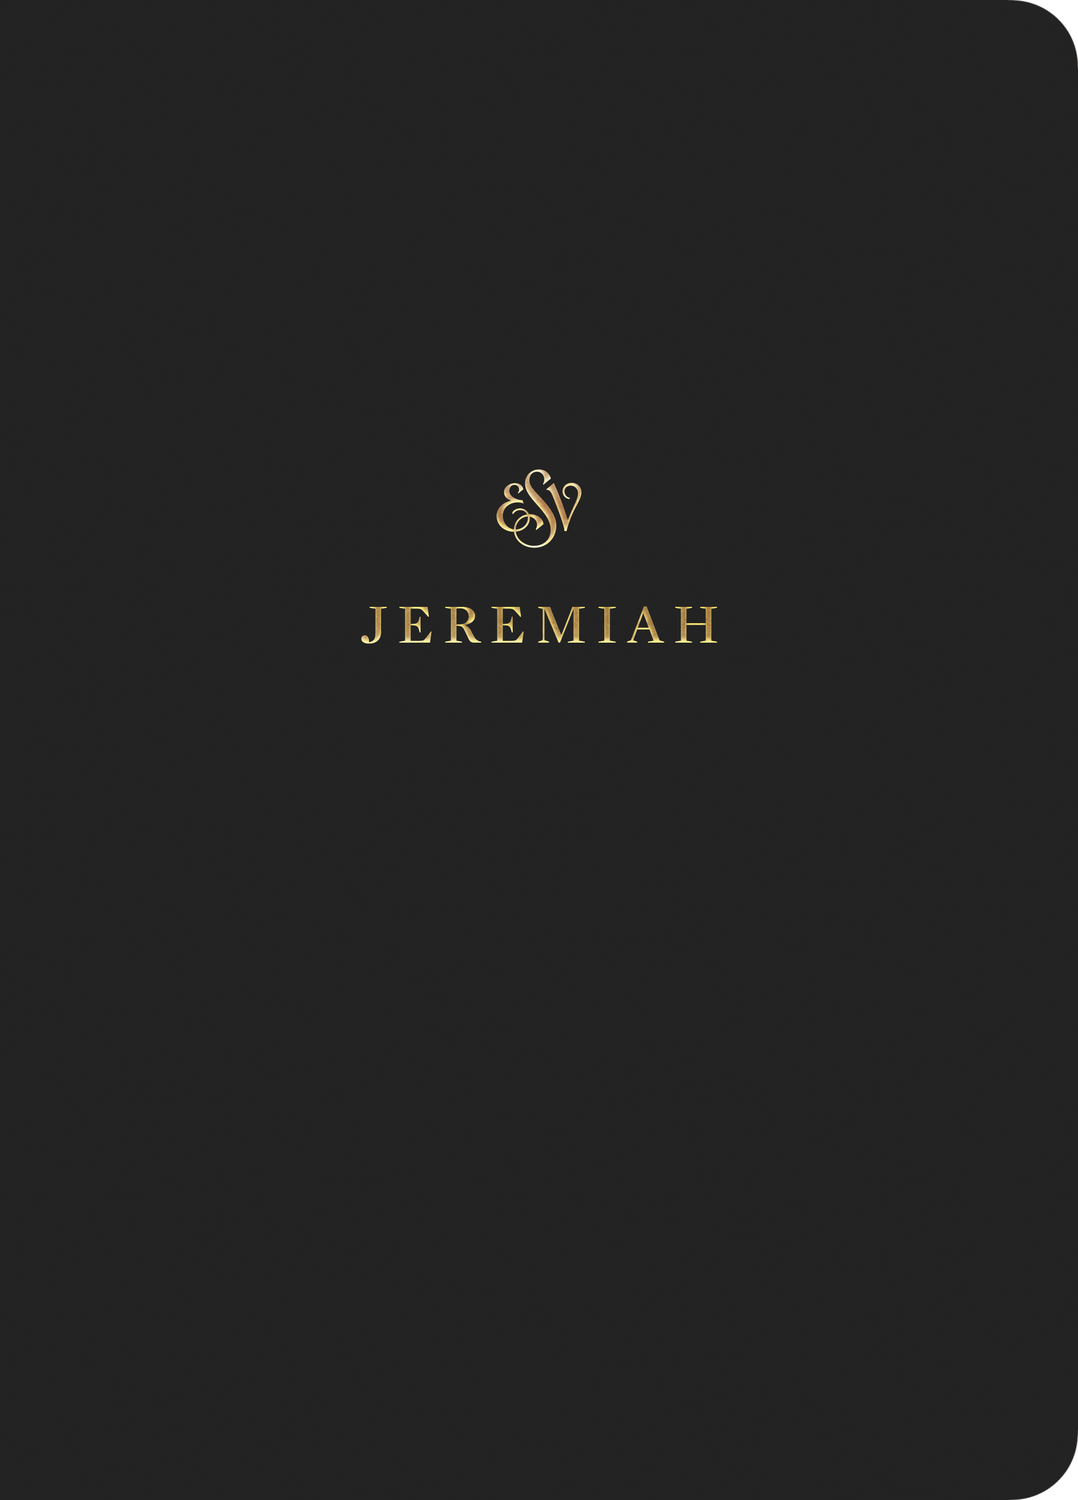 ESV Scripture Journal: Jeremiah